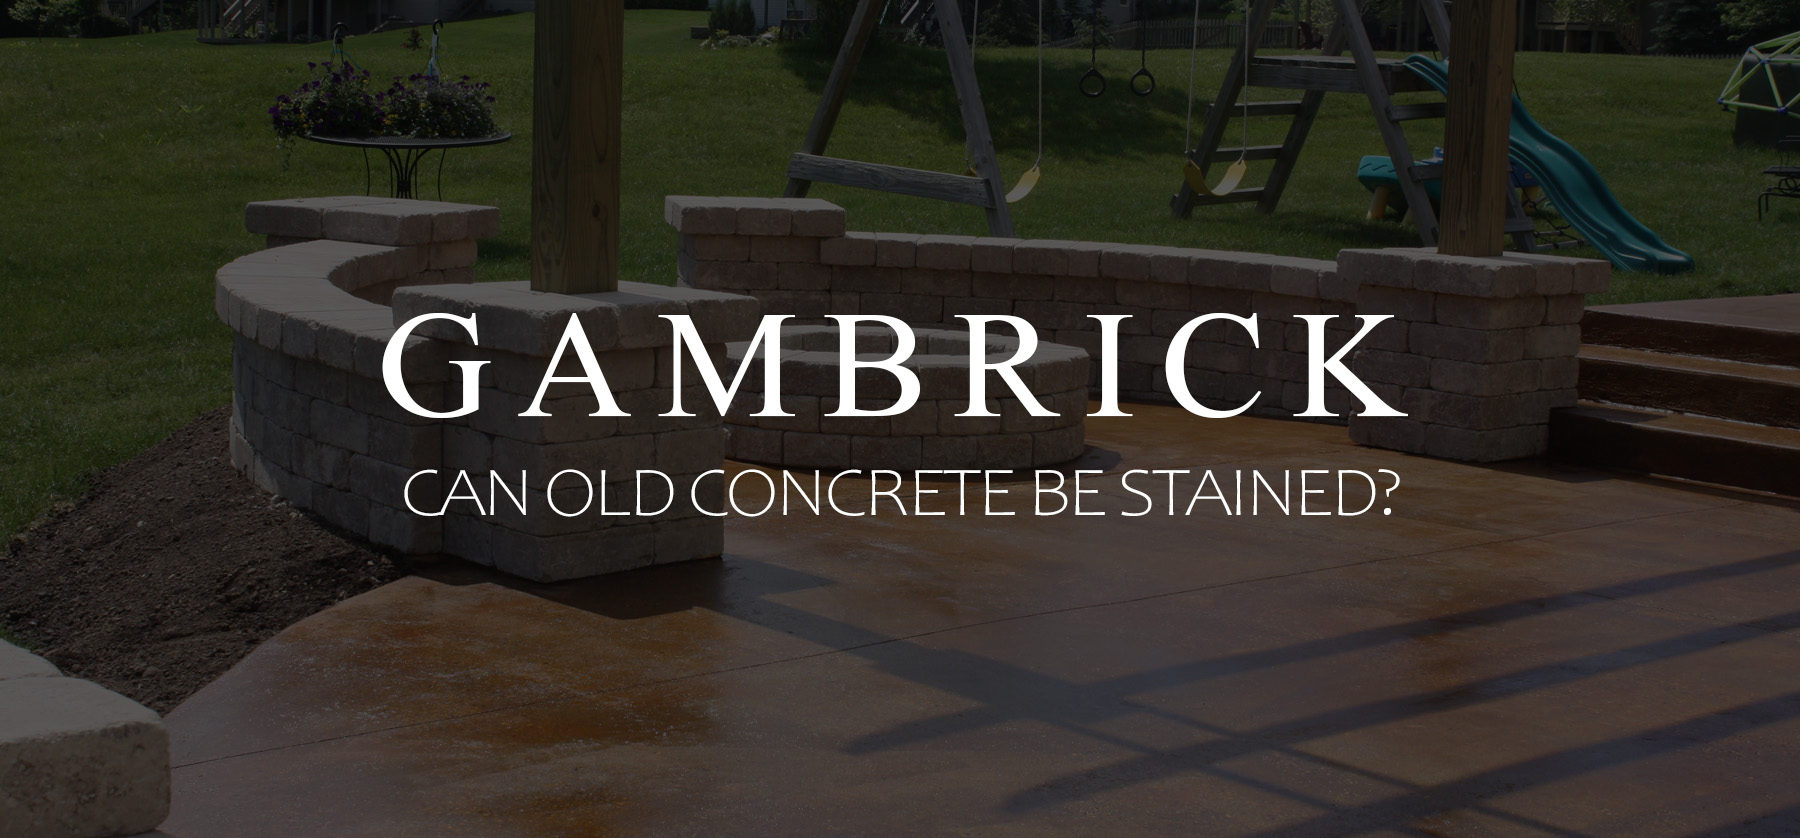 can old concrete be stained banner pic